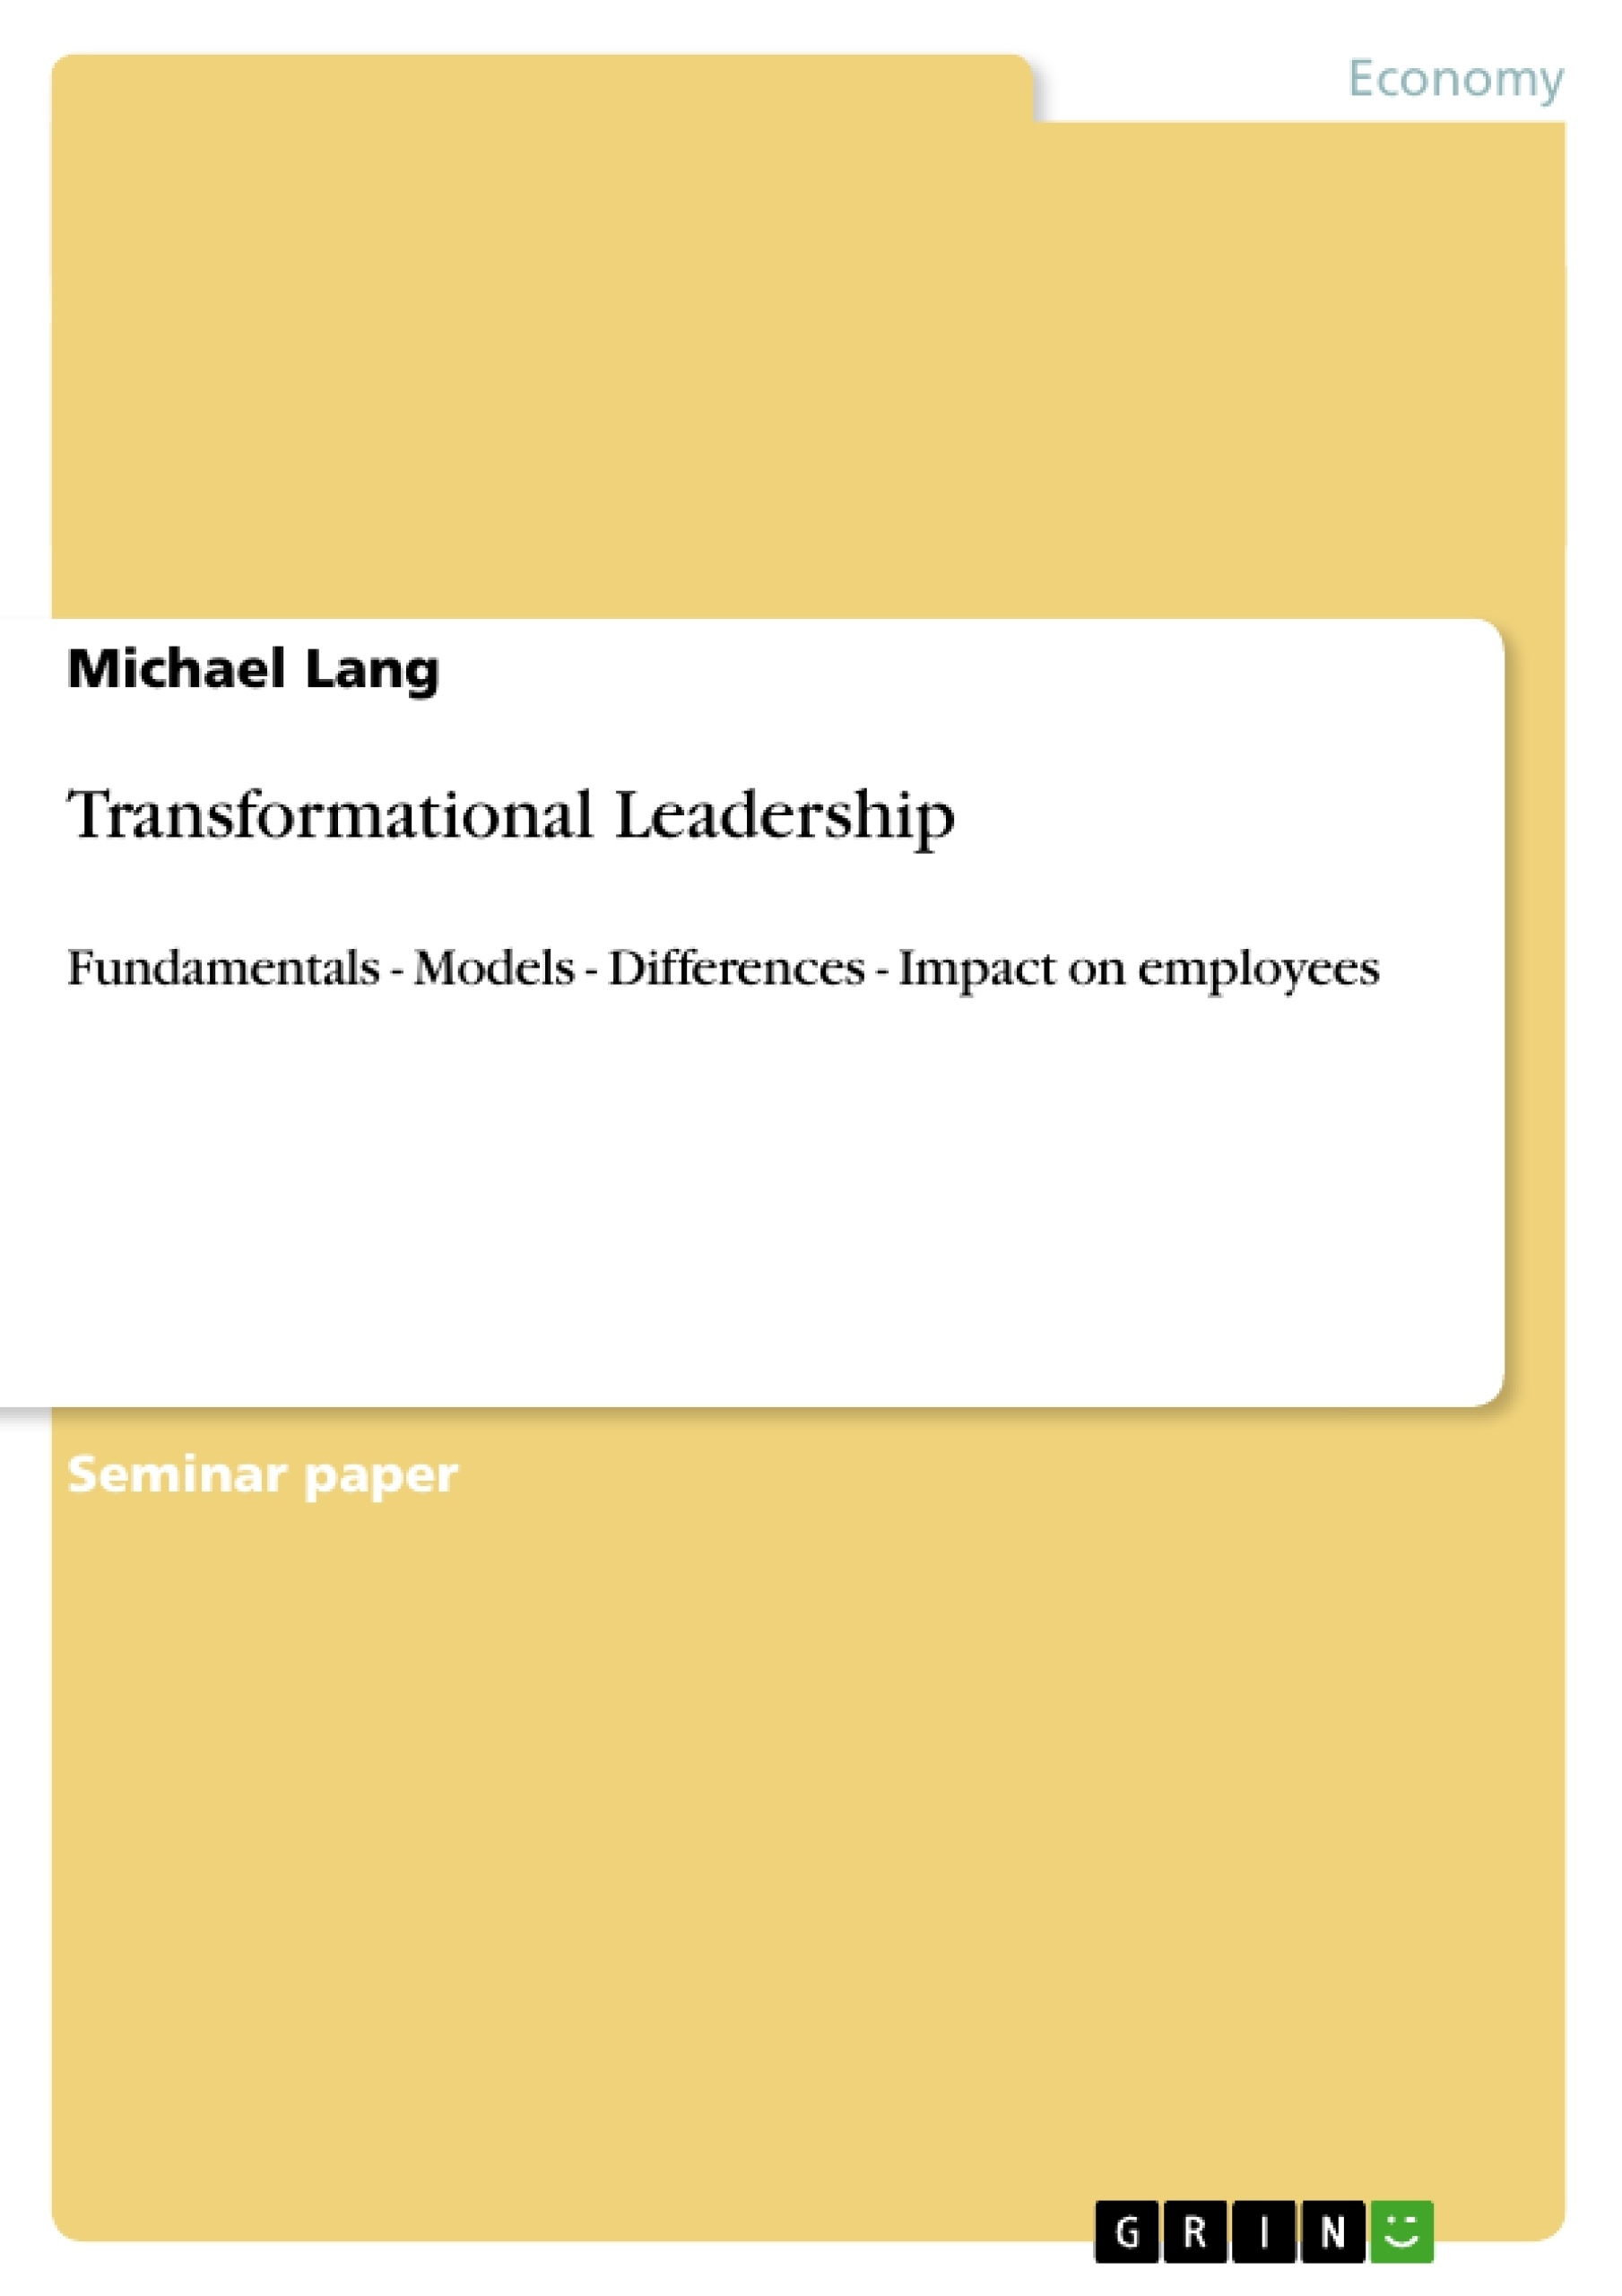 Title: Transformational Leadership